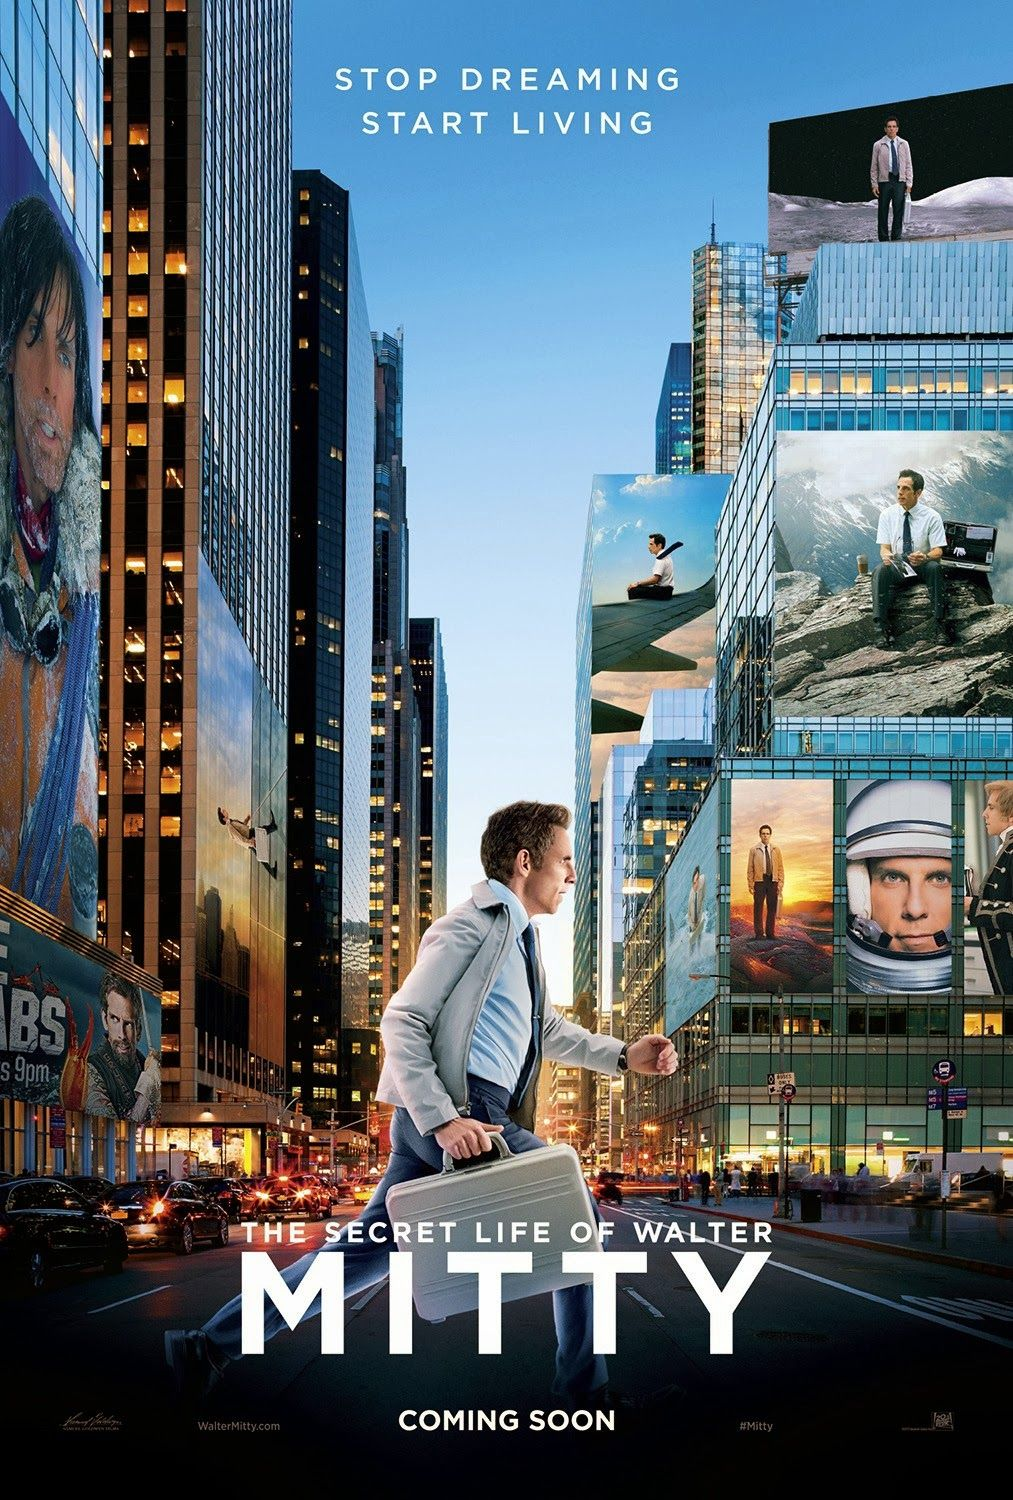 fantasy in the secret life of walter Extremely ambitious in scope—the movie takes on several genres at once, including fantasy, romantic comedy, action, adventure and more—the secret life of walter mitty does have good.